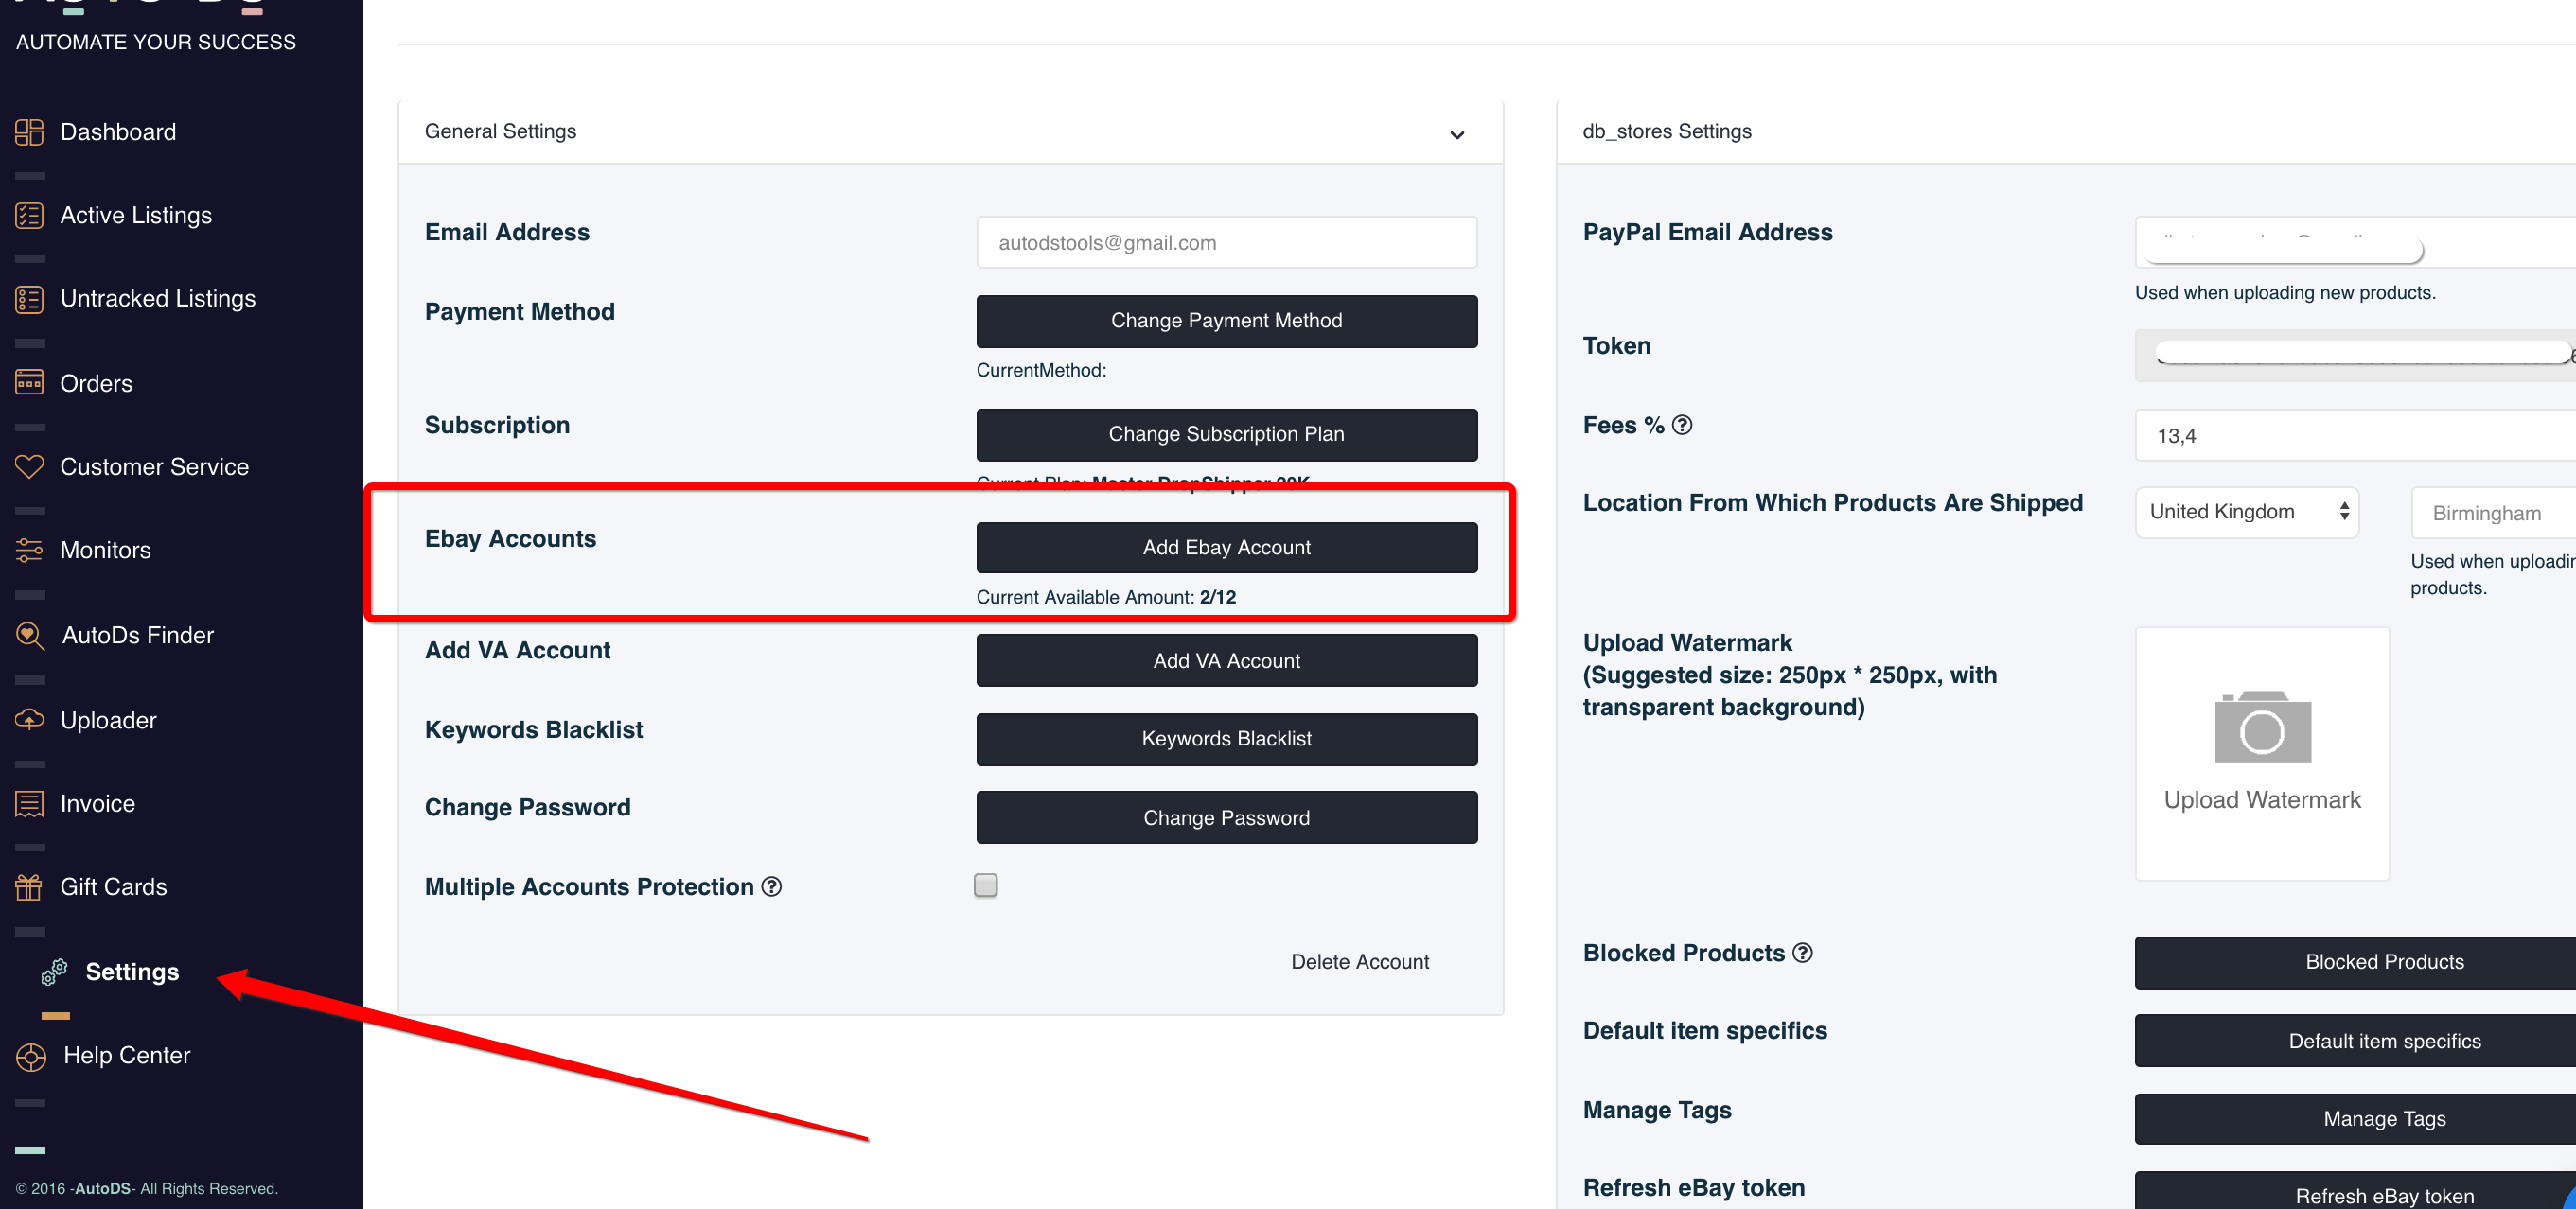 How To Connect More Than One Ebay Account To Your Autods Account